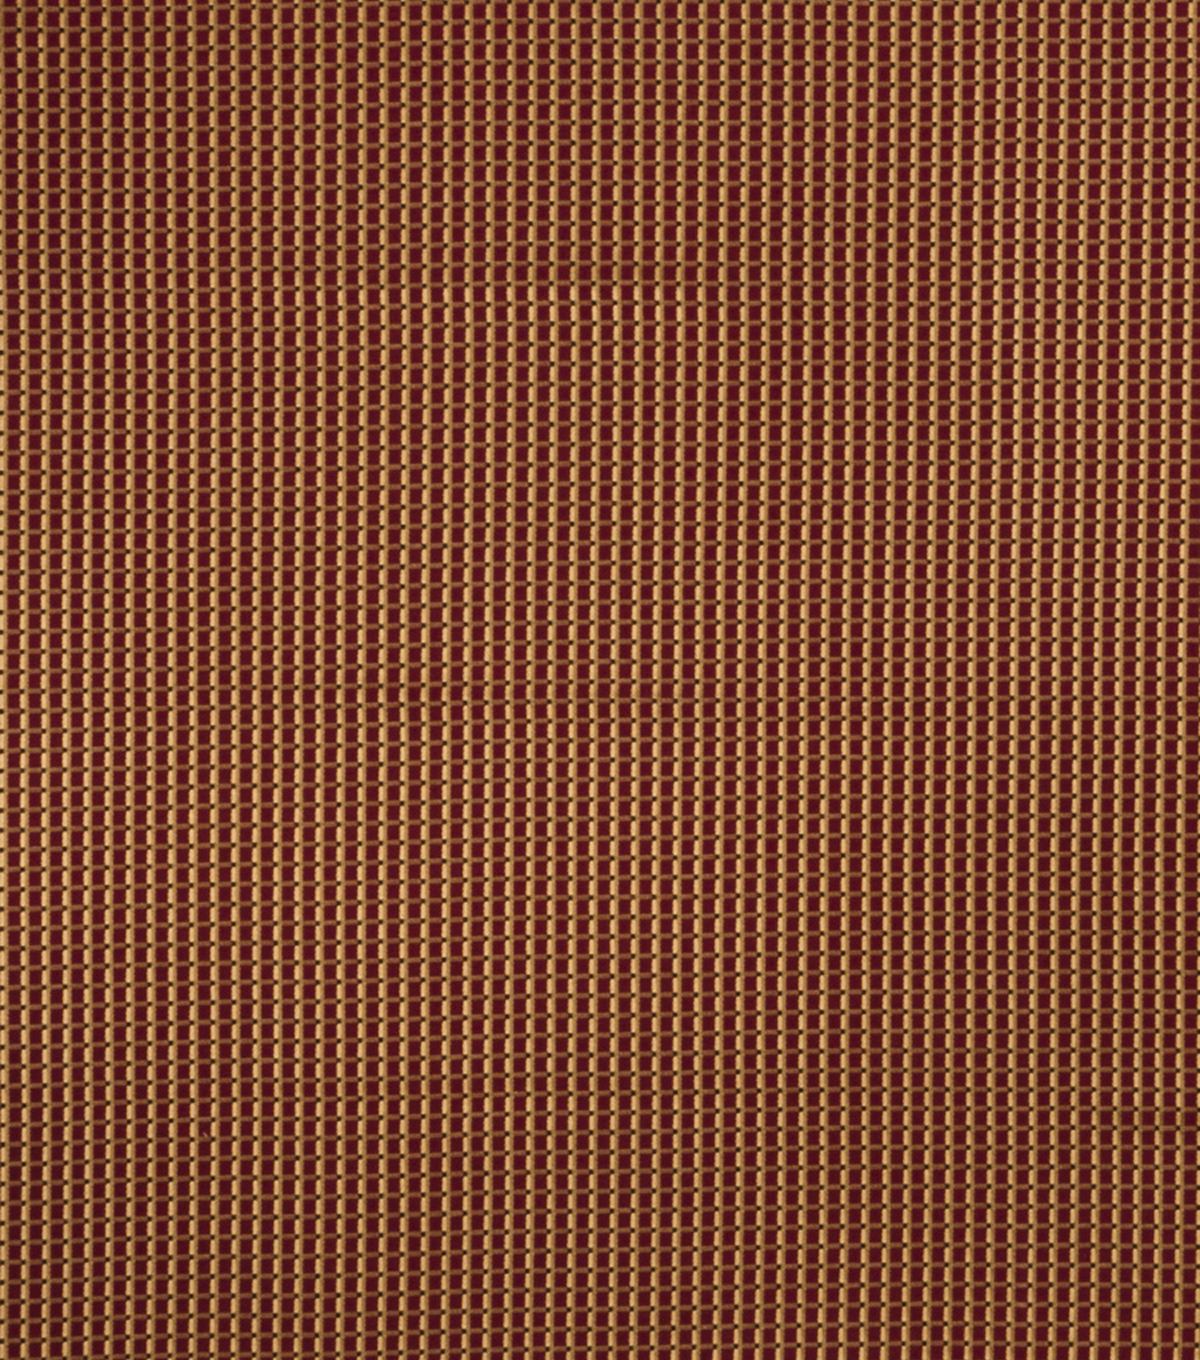 Home Decor 8\u0022x8\u0022 Fabric Swatch-SMC Designs Croft / Crimson